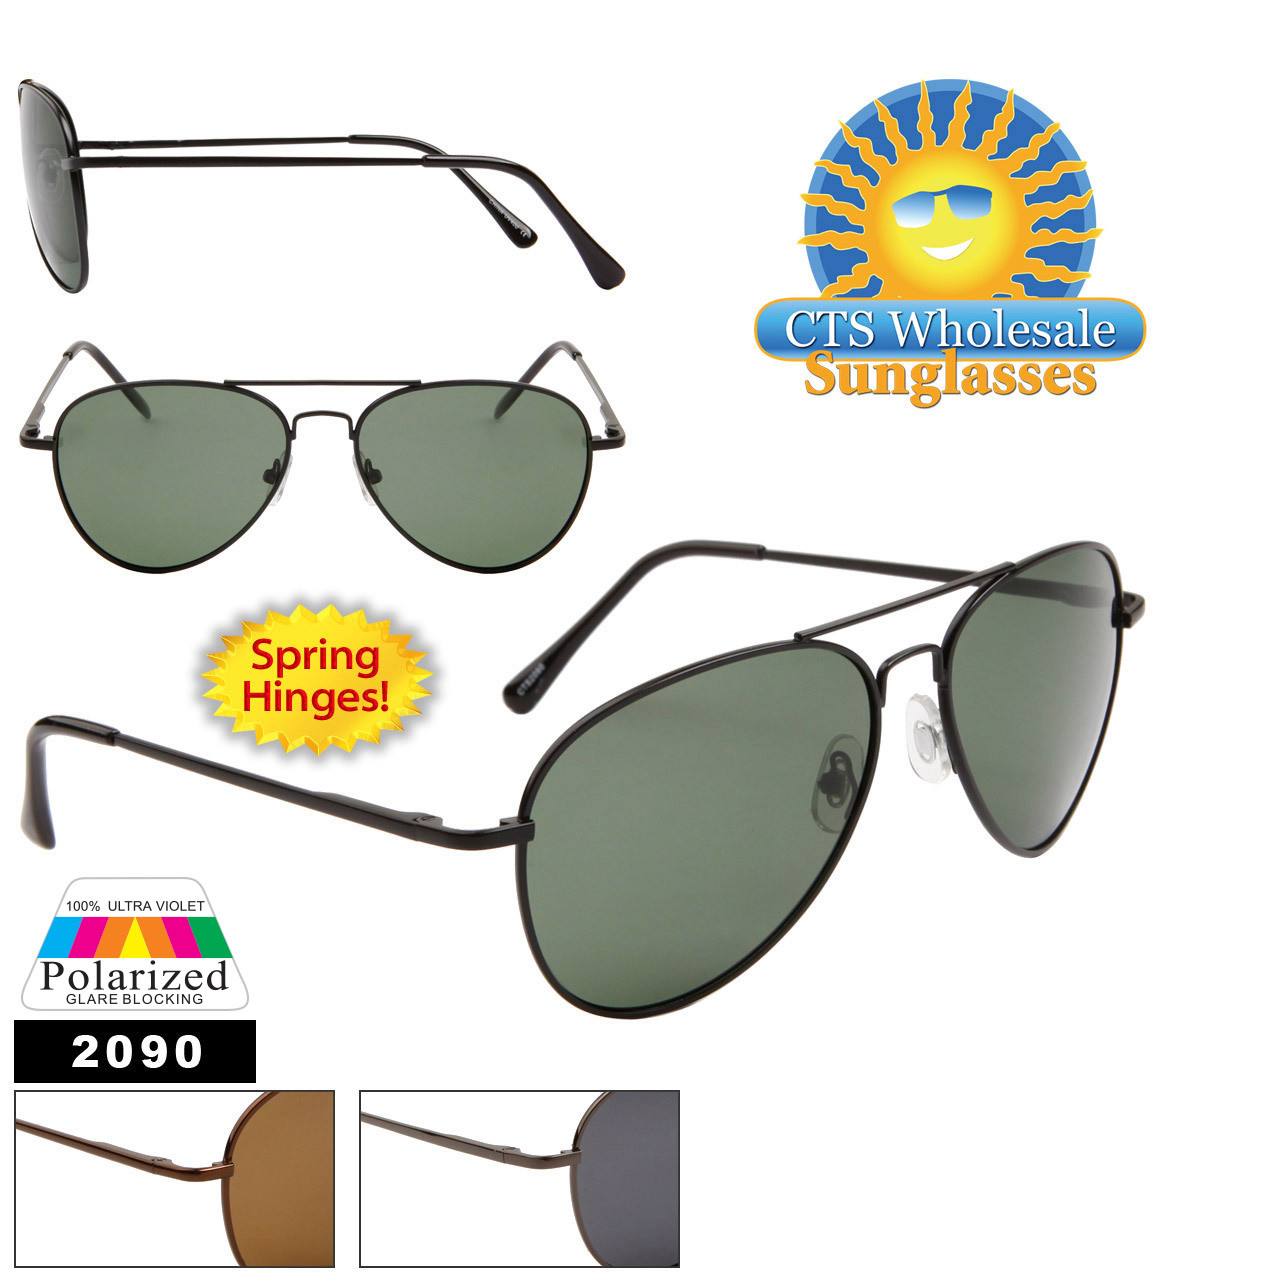 Polarized Aviator Sunglasses #2090